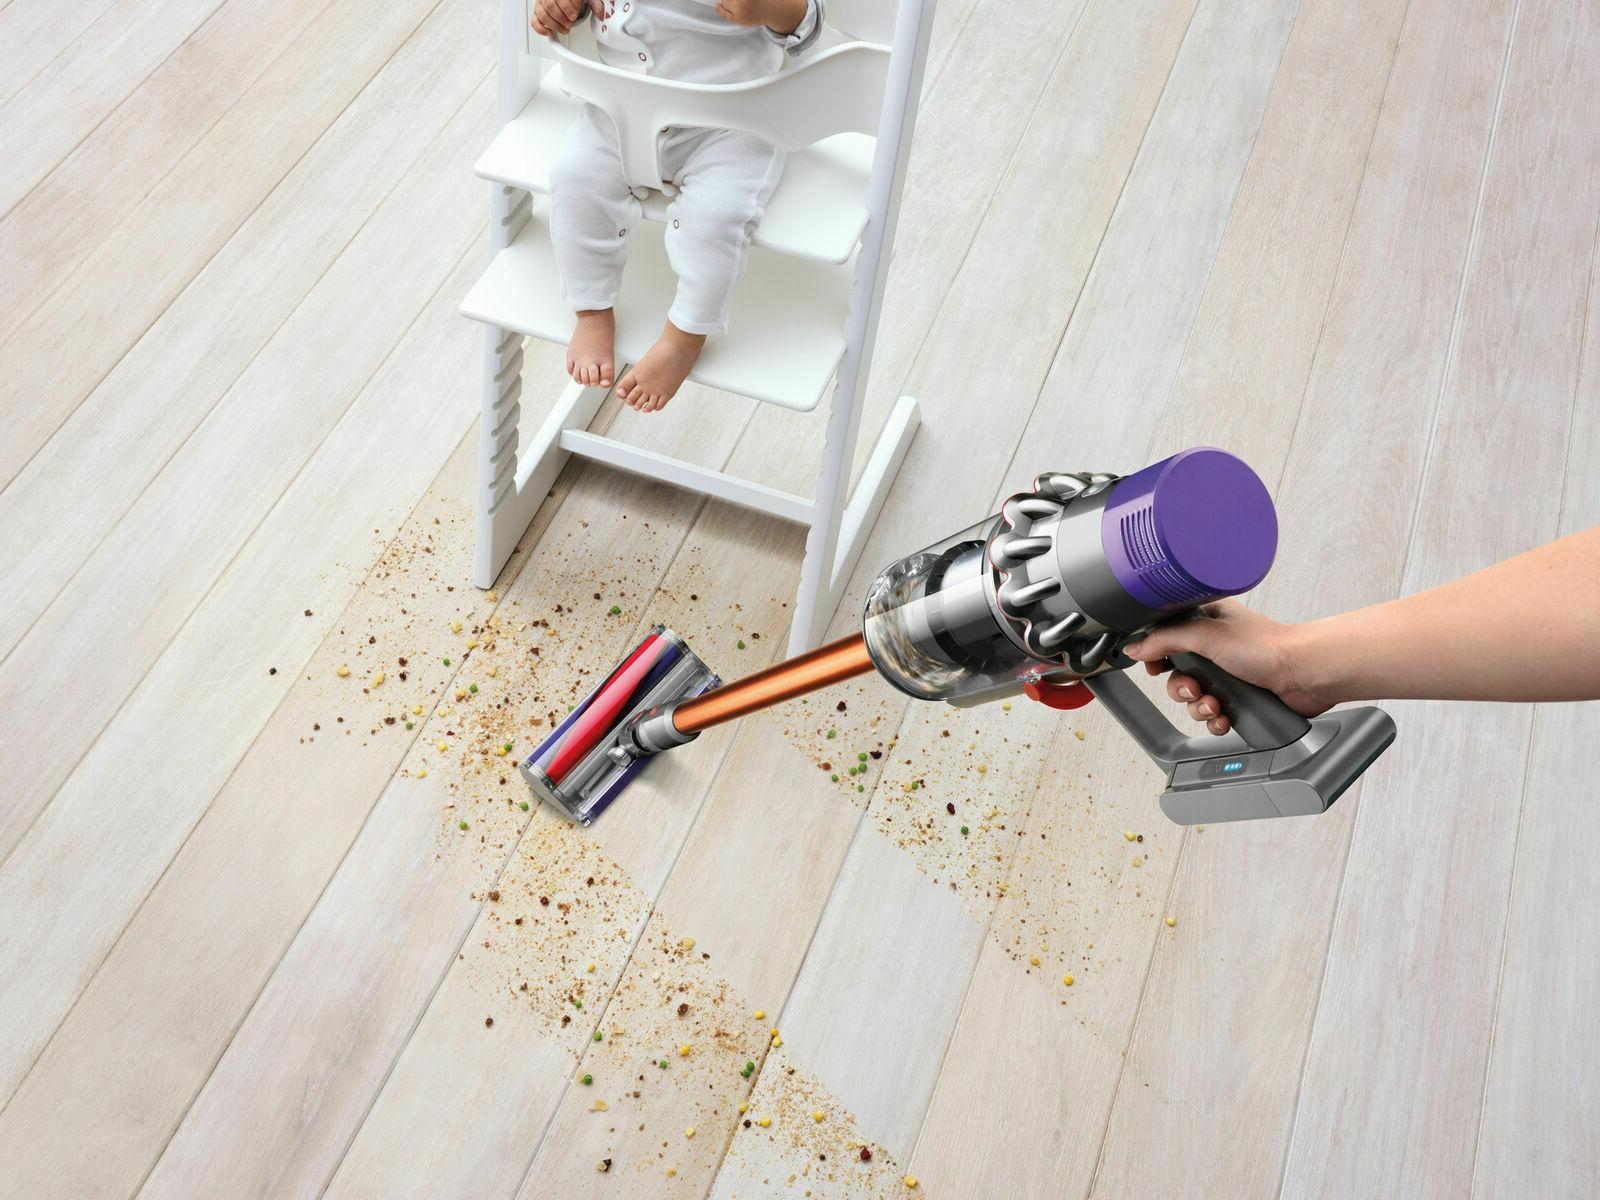 Dyson pro with new